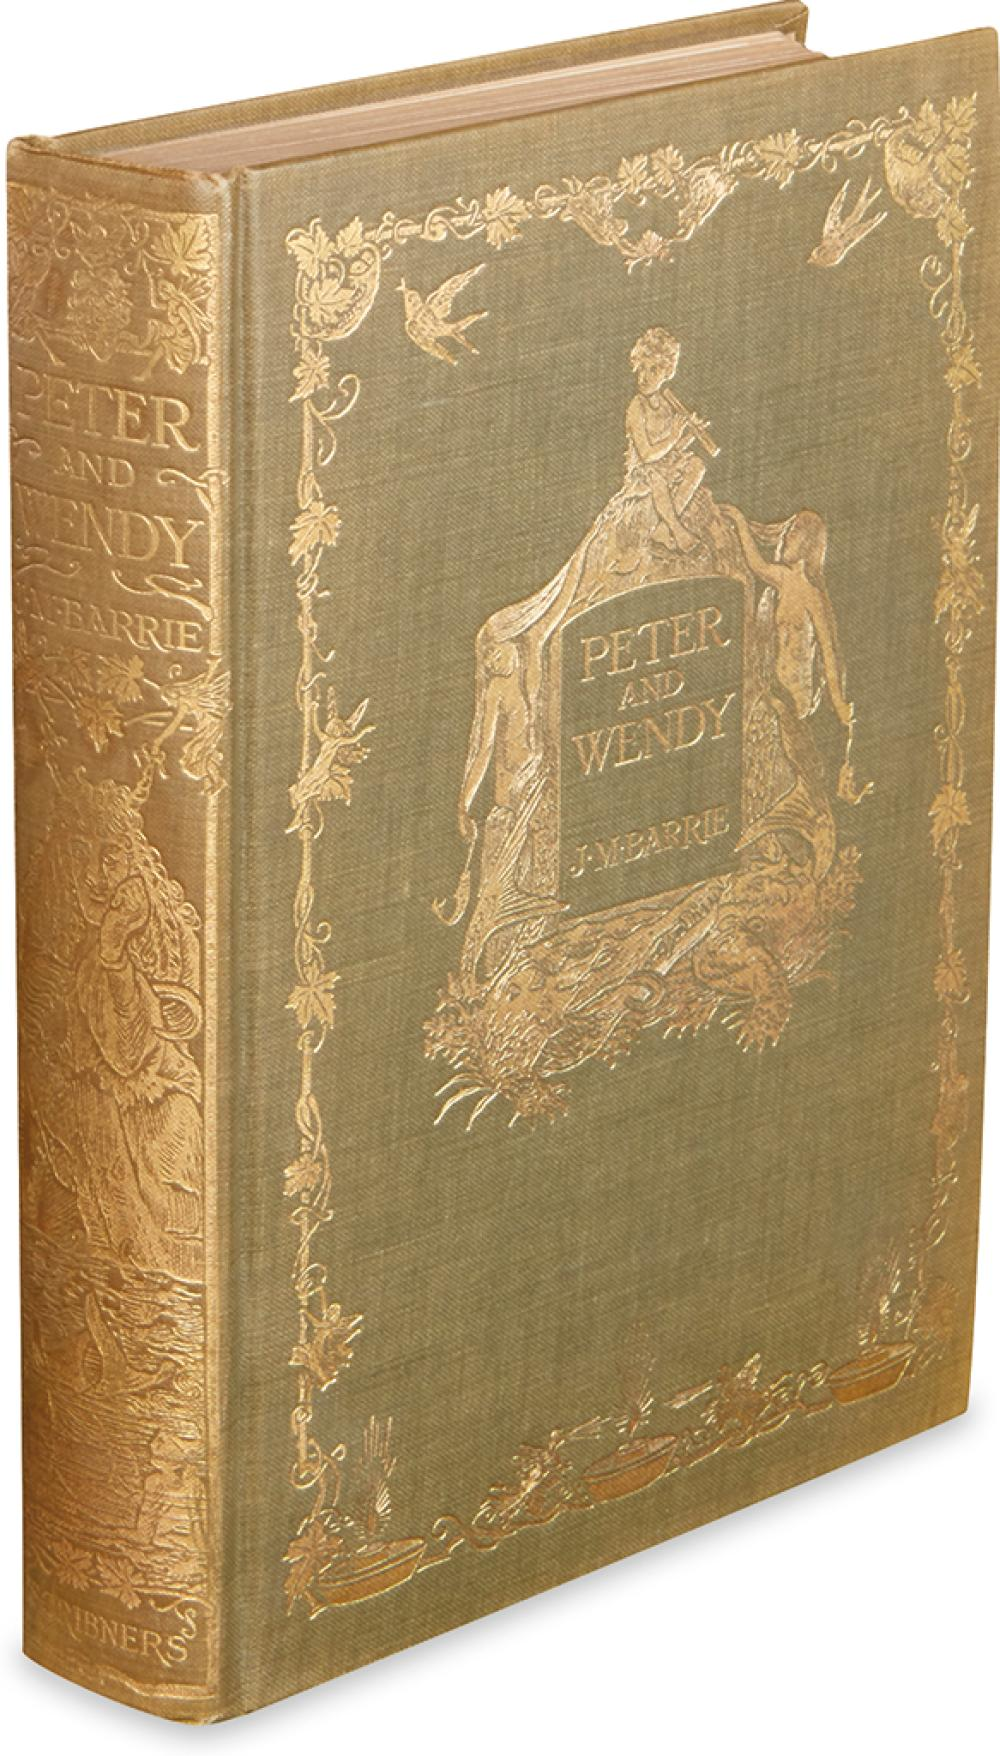 (CHILDREN'S LITERATURE.) BARRIE, J.M. Peter and Wendy.